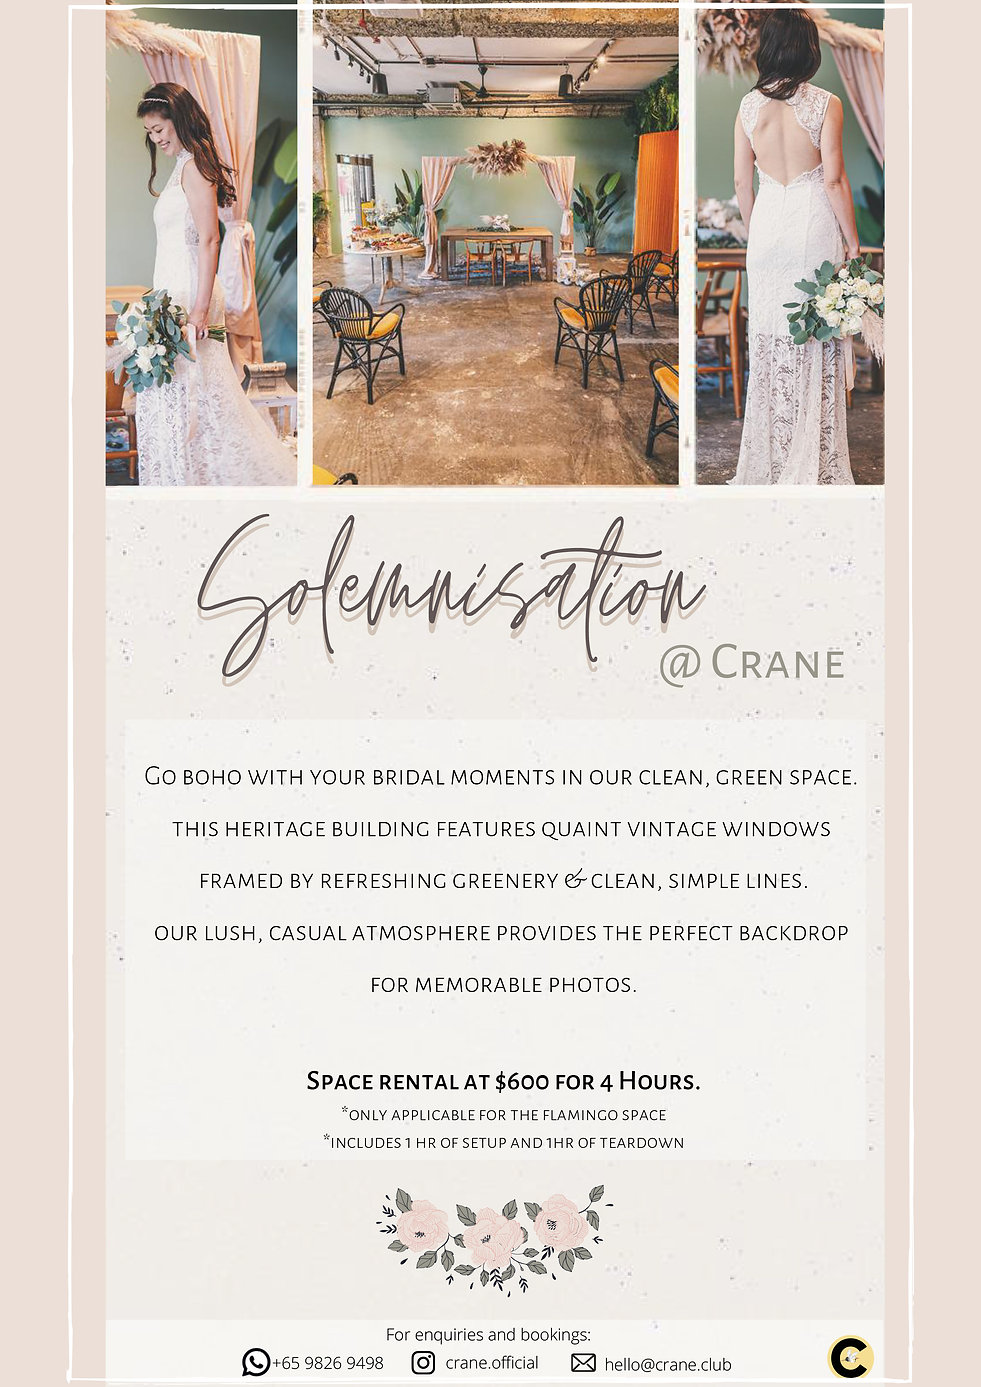 Solemnisation Package @ Crane.jpg